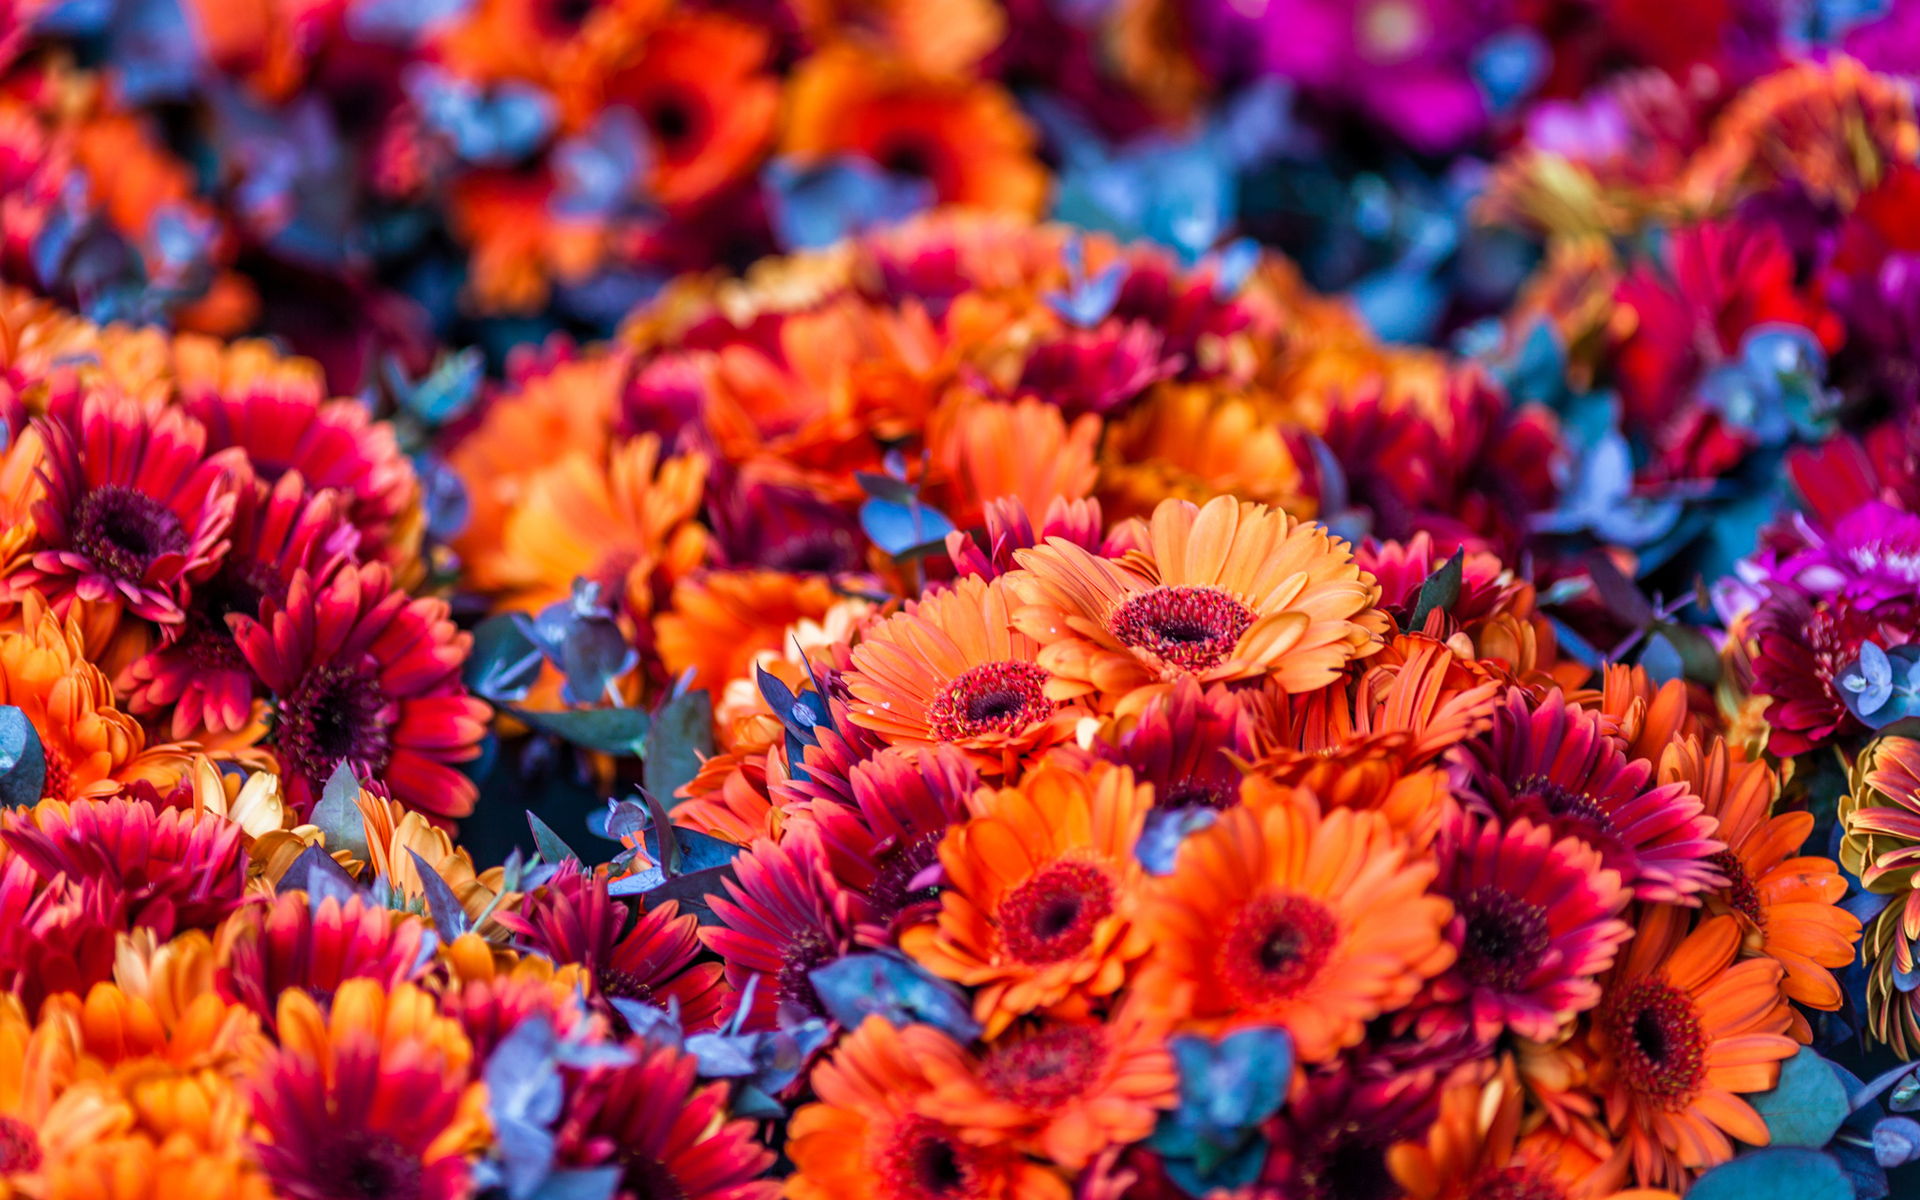 Wallpapersafari: Colorful Flowers Background